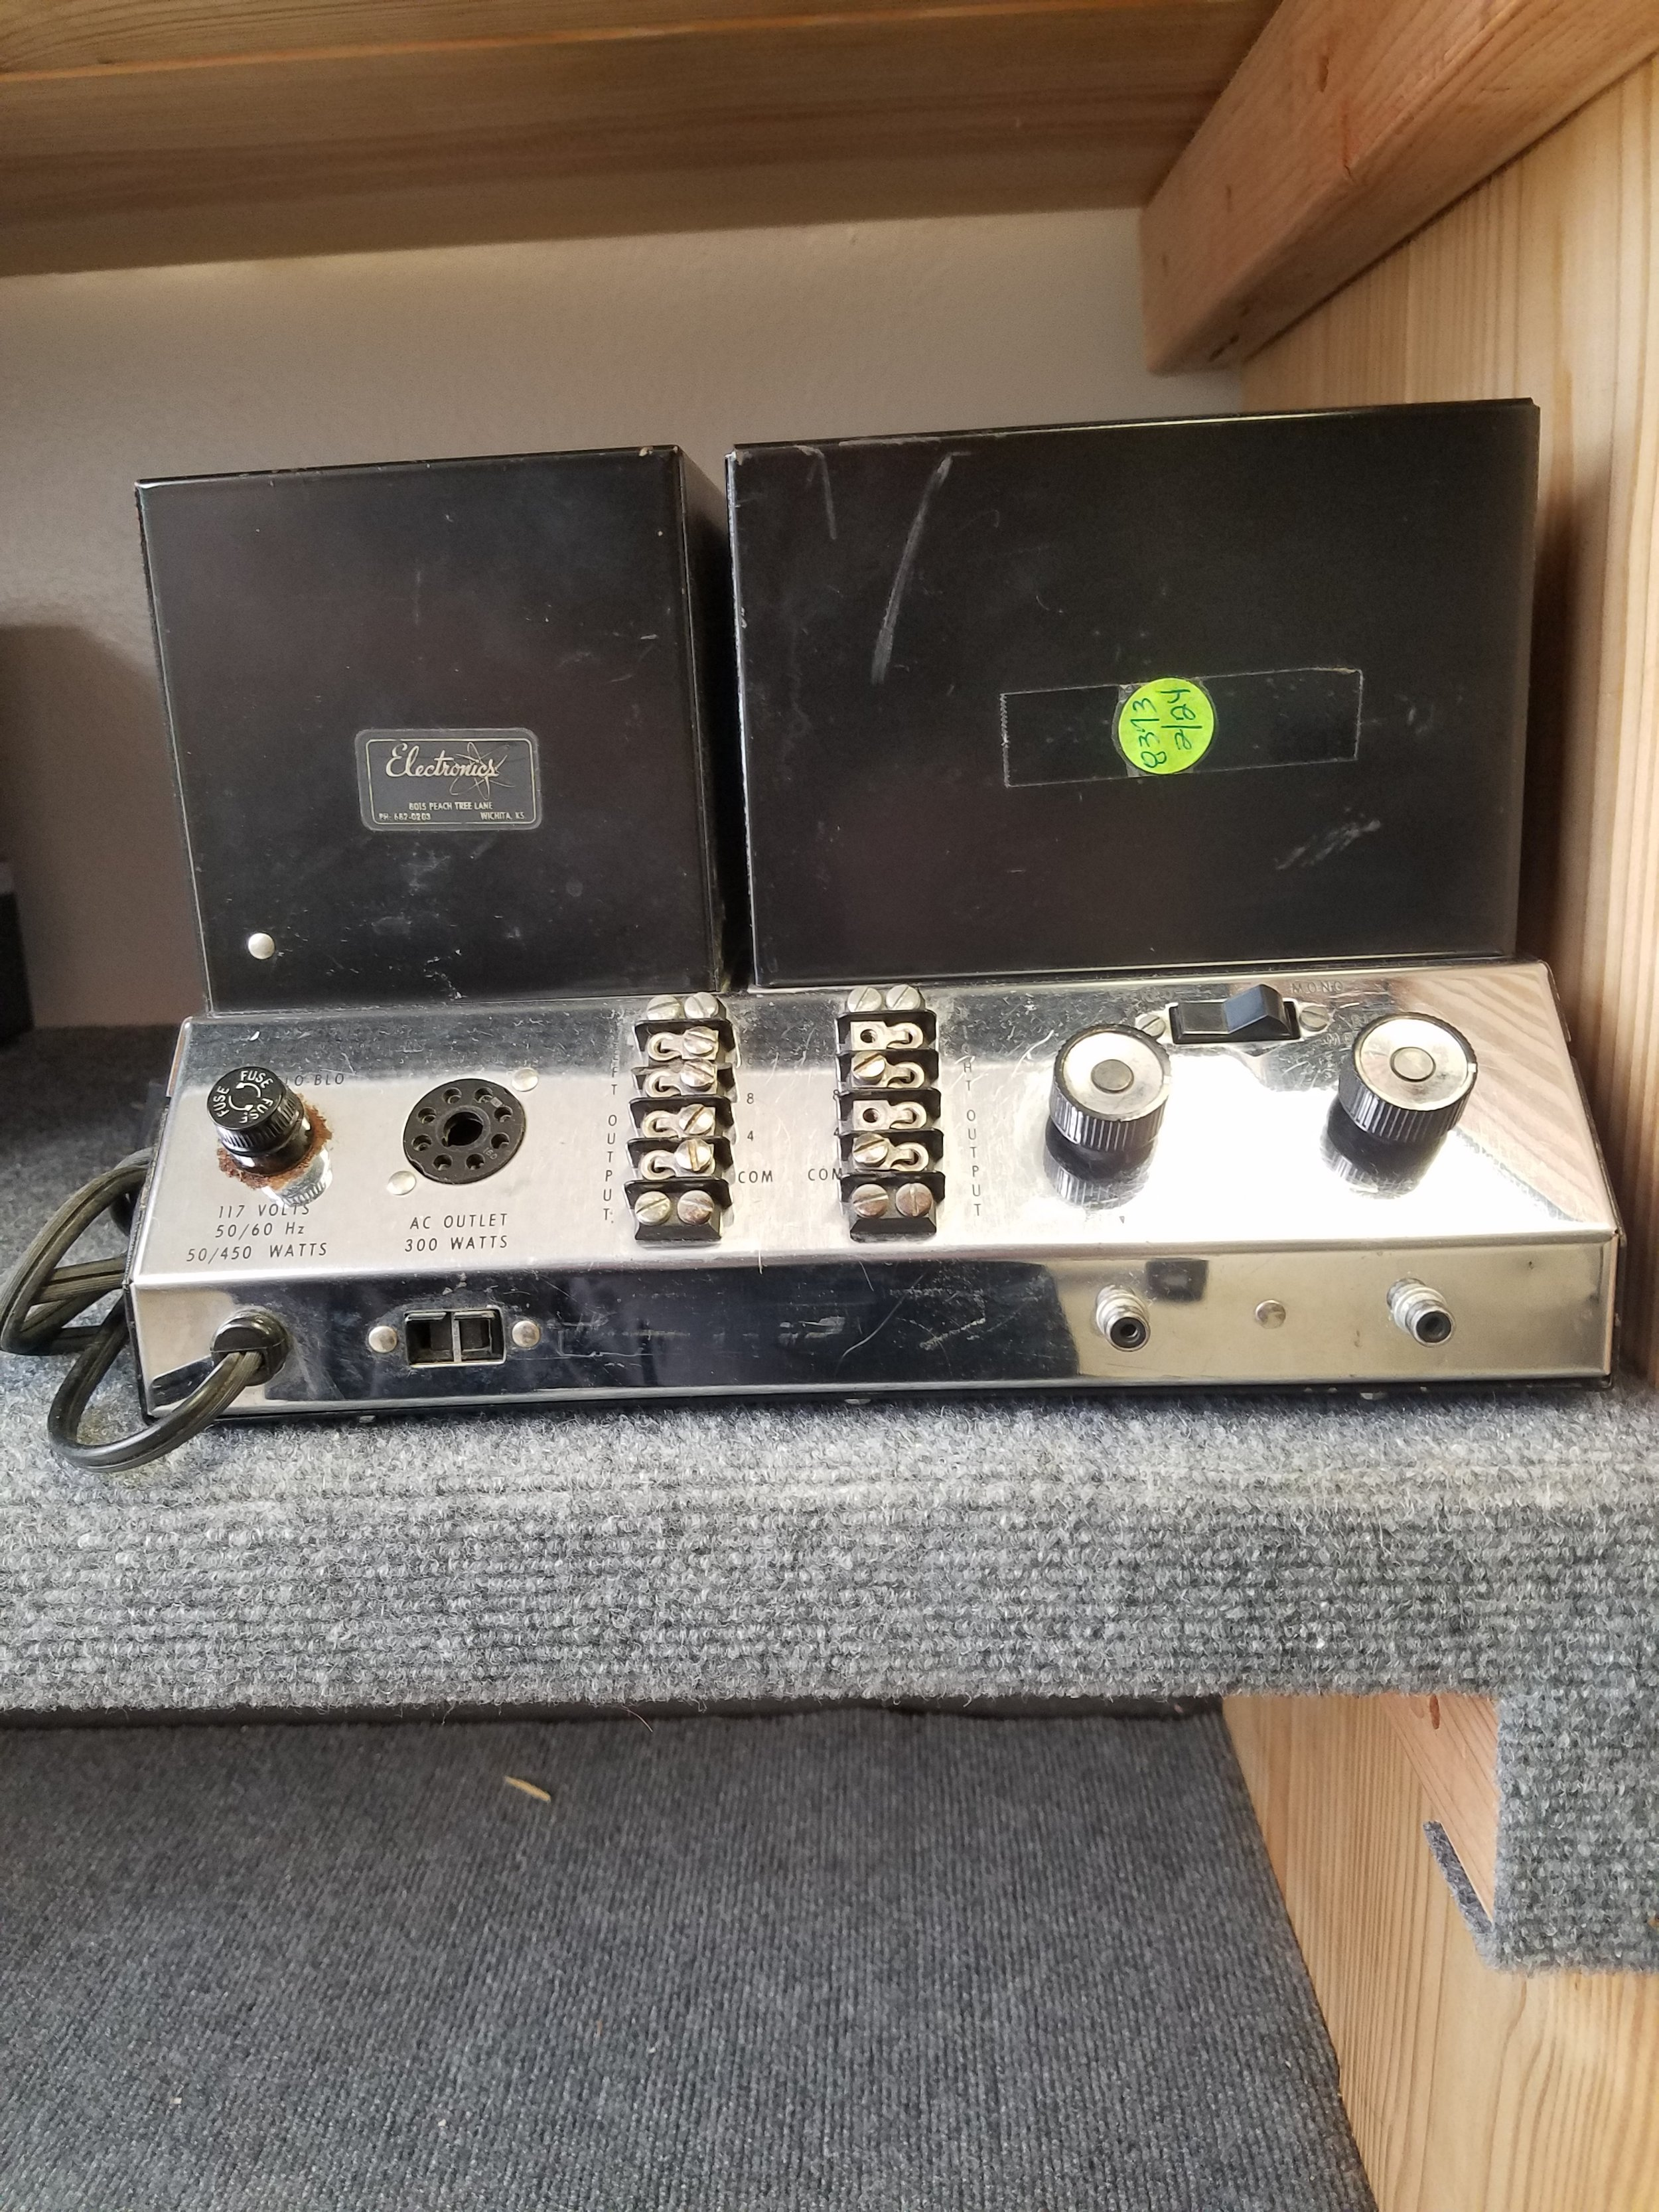 McIntosh amp - MC-2100 - 950.00  Used  SPECIFICATIONS  Power output: 105 watts per channel into 8Ω (stereo), 210W into 8Ω (mono) Frequency response: 20Hz to 20kHz Total harmonic distortion: 0.25% Damping factor: 14 Input sensitivity: 0.5V Signal to noise ratio: 90dB Speaker load impedance: 4Ω to 16Ω